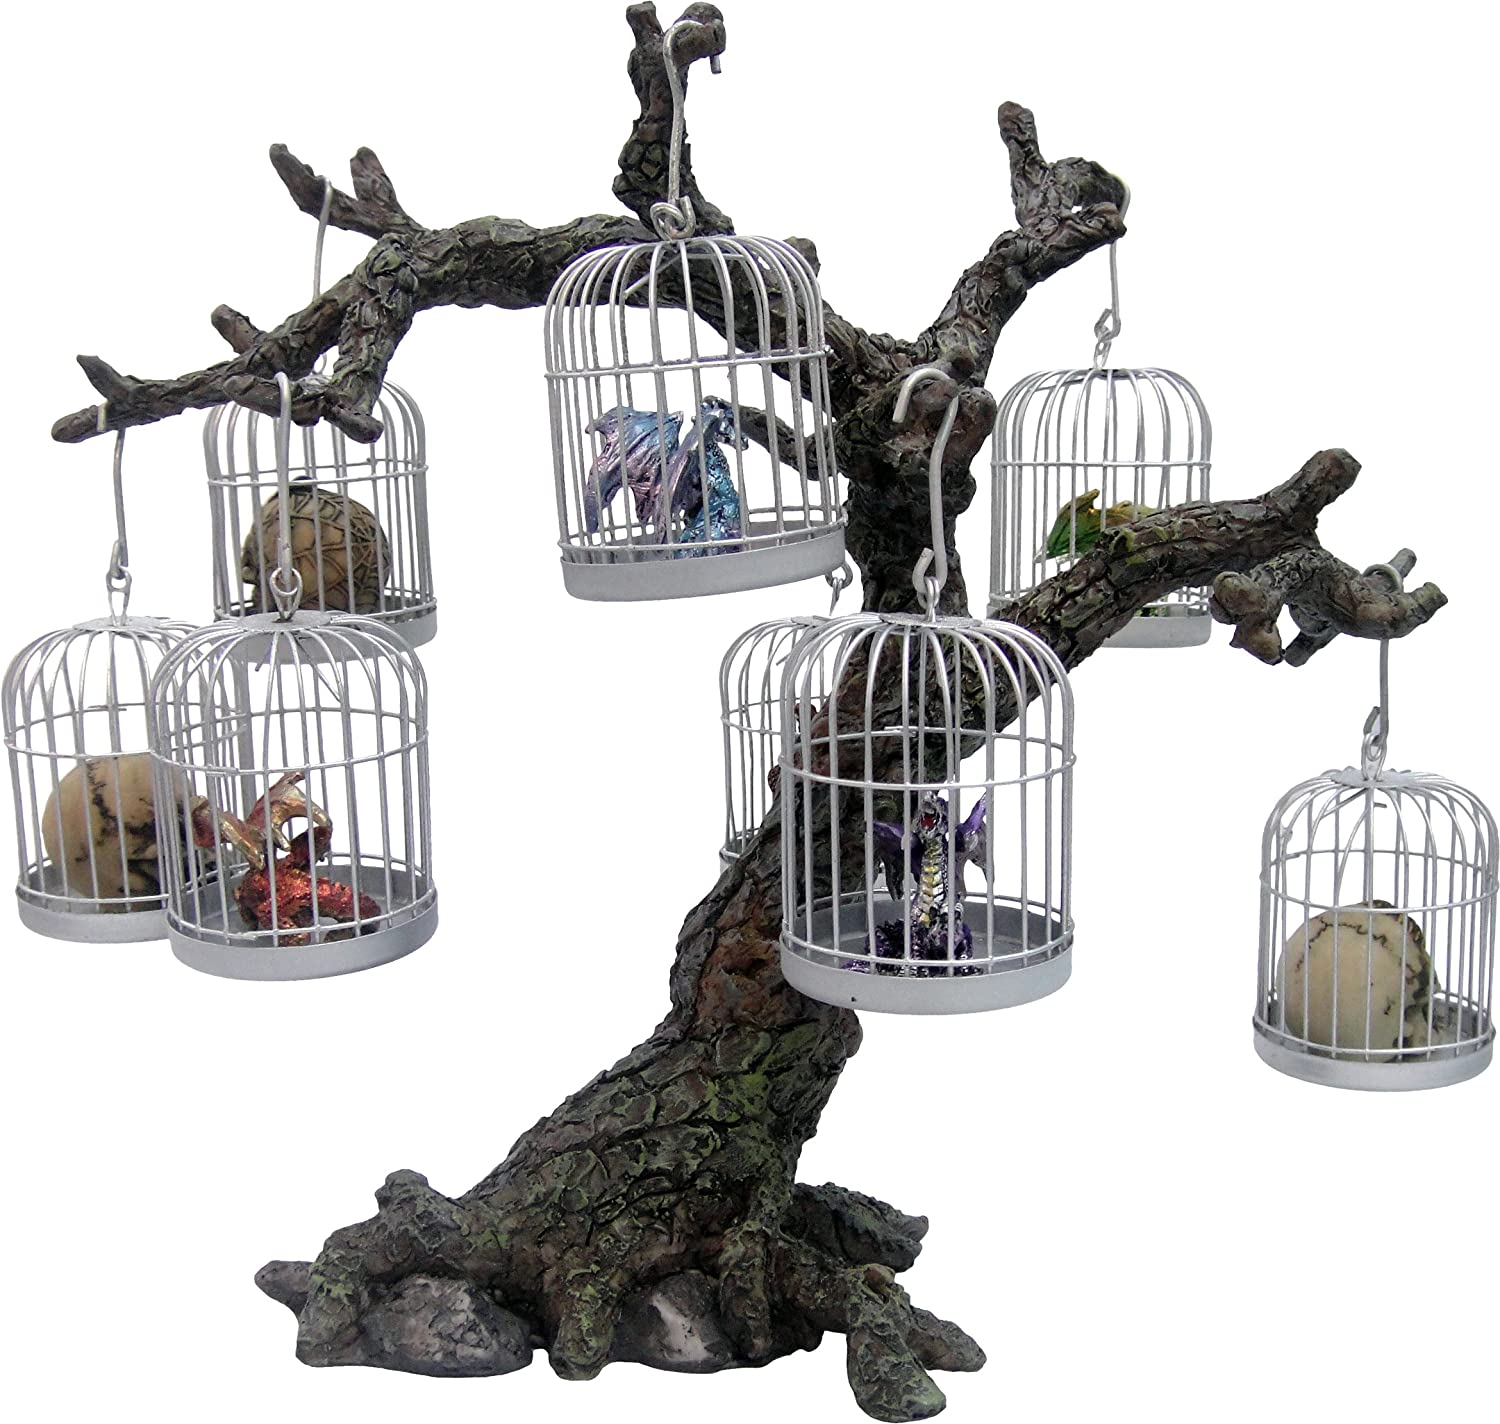 THE SACRED OAK TREE DISPLAY STAND 25CM TREE SPIRITS NEMESIS NOW by Nemesis Now